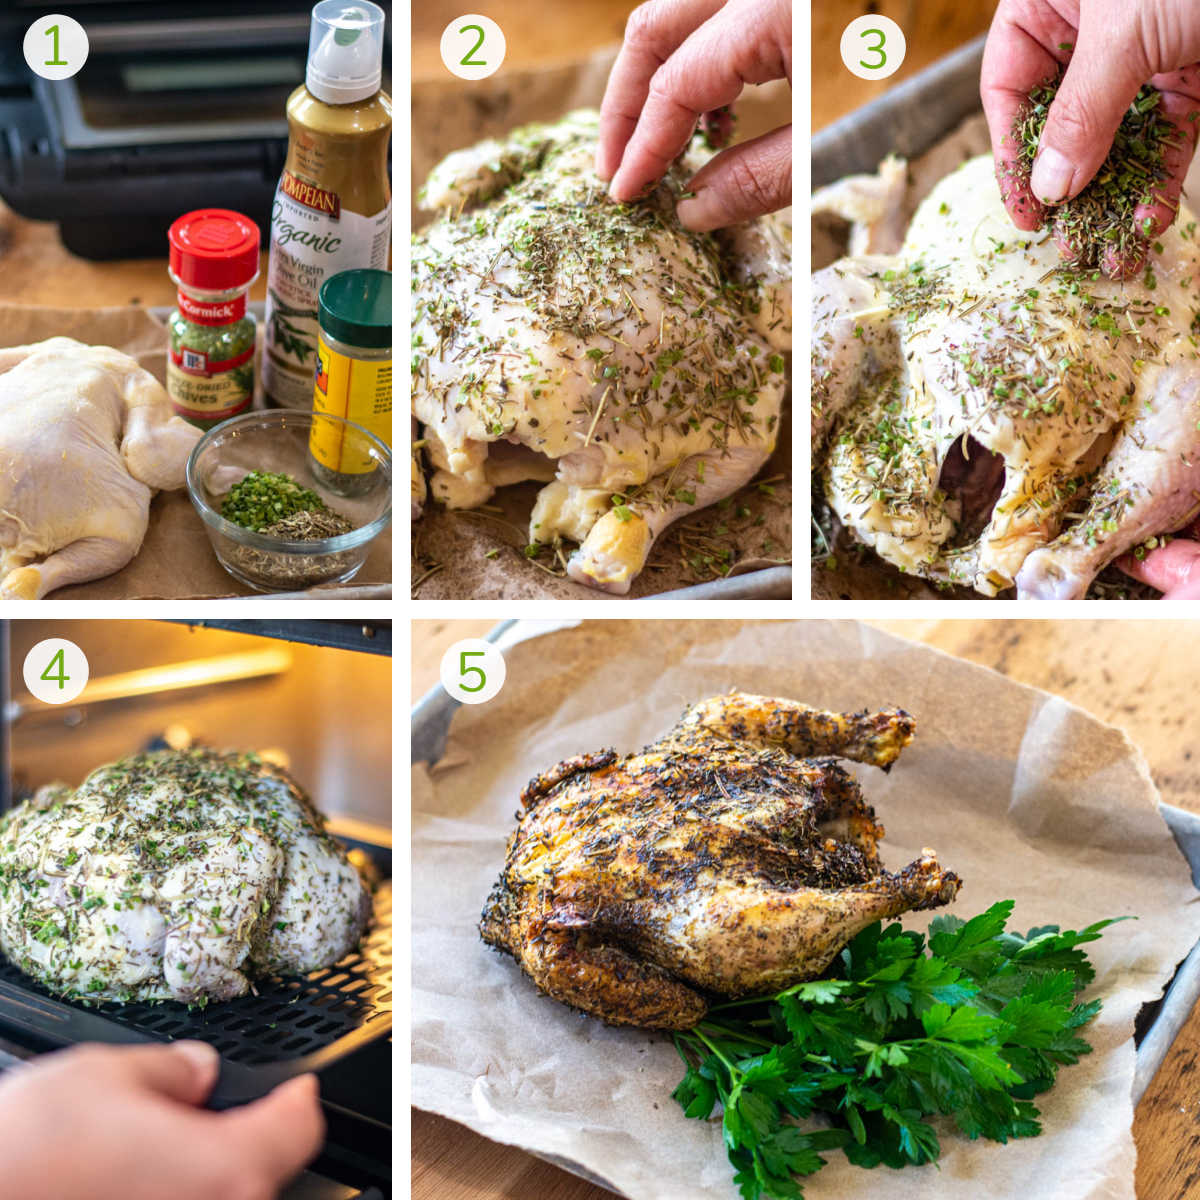 process photos showing rubbing the Cornish hen with chives and herbs de Provence, adding it to the air fryer and cooking.